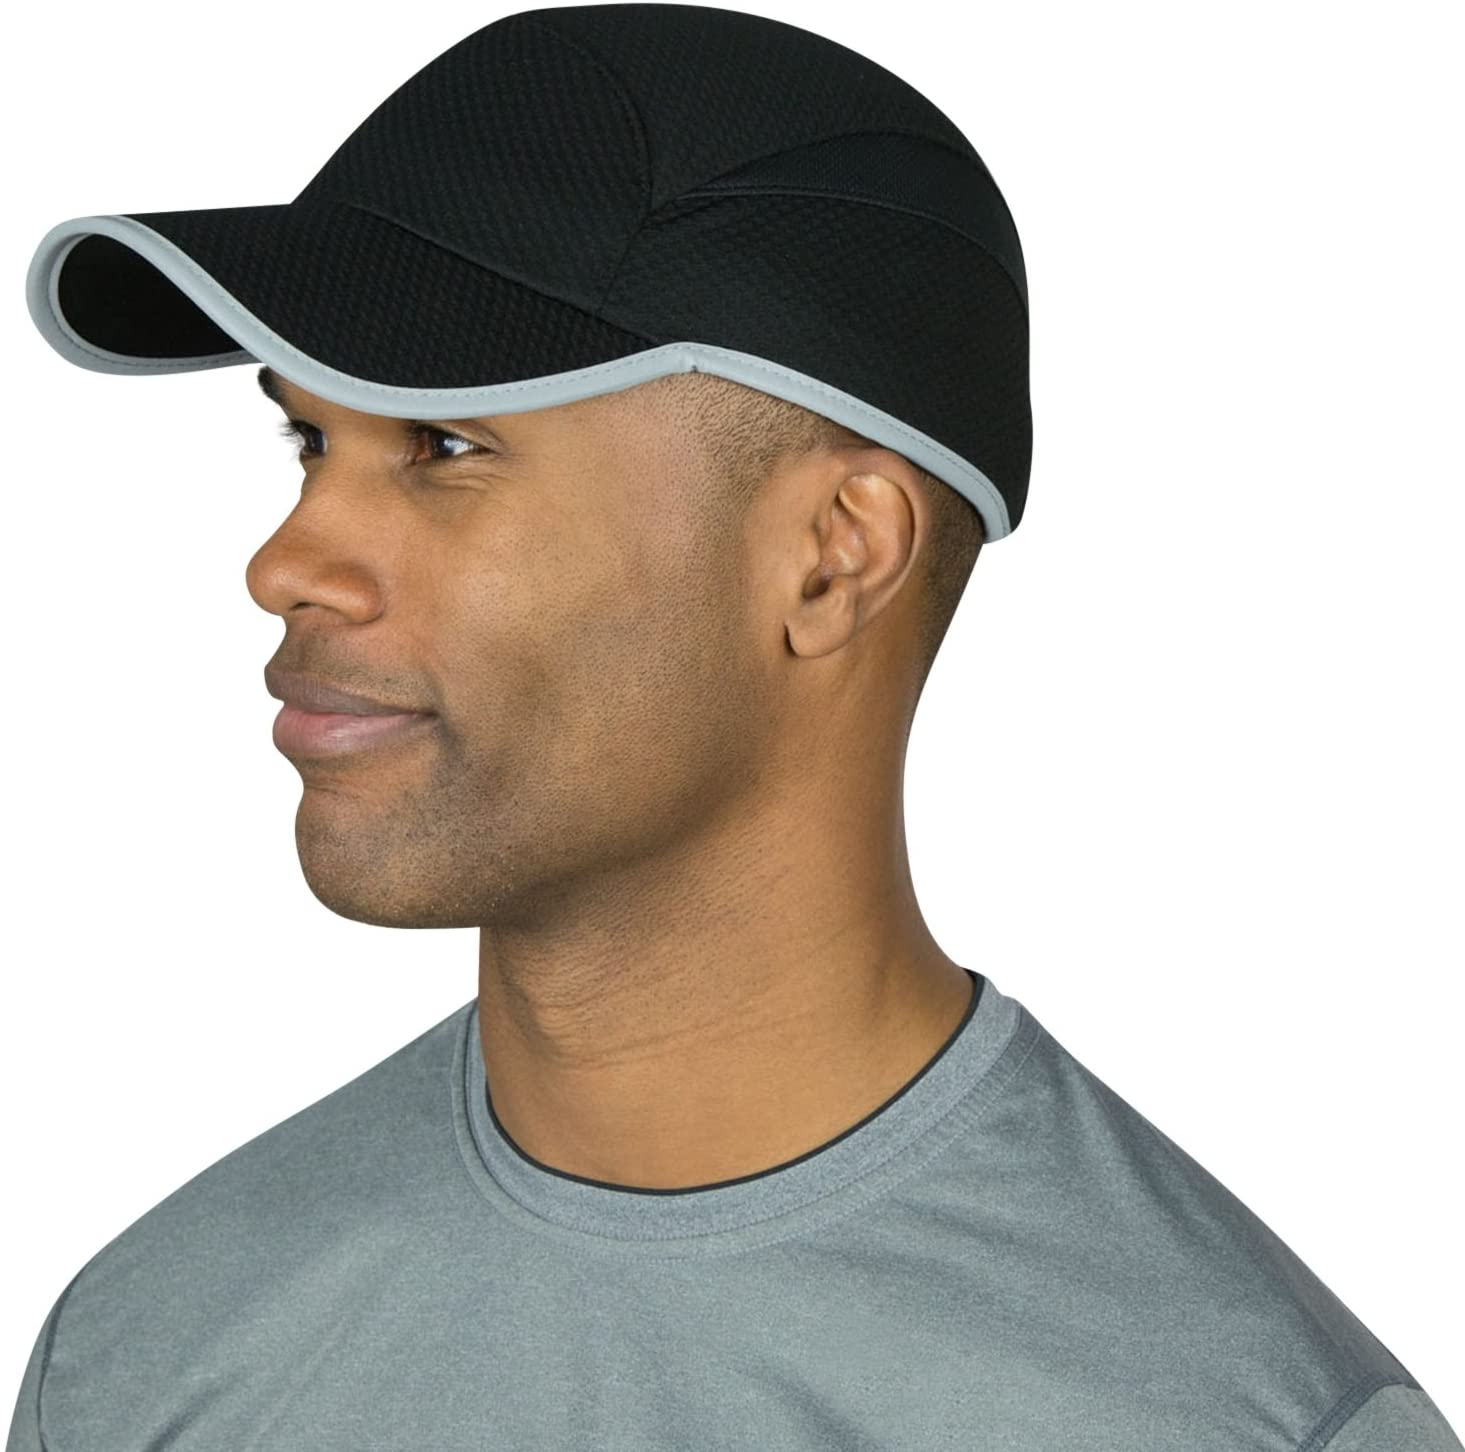 TrailHeads Reflective Running Cap | A Quick Dry Hat for Men | The Flashback 360 Sports Cap - 2 Colors